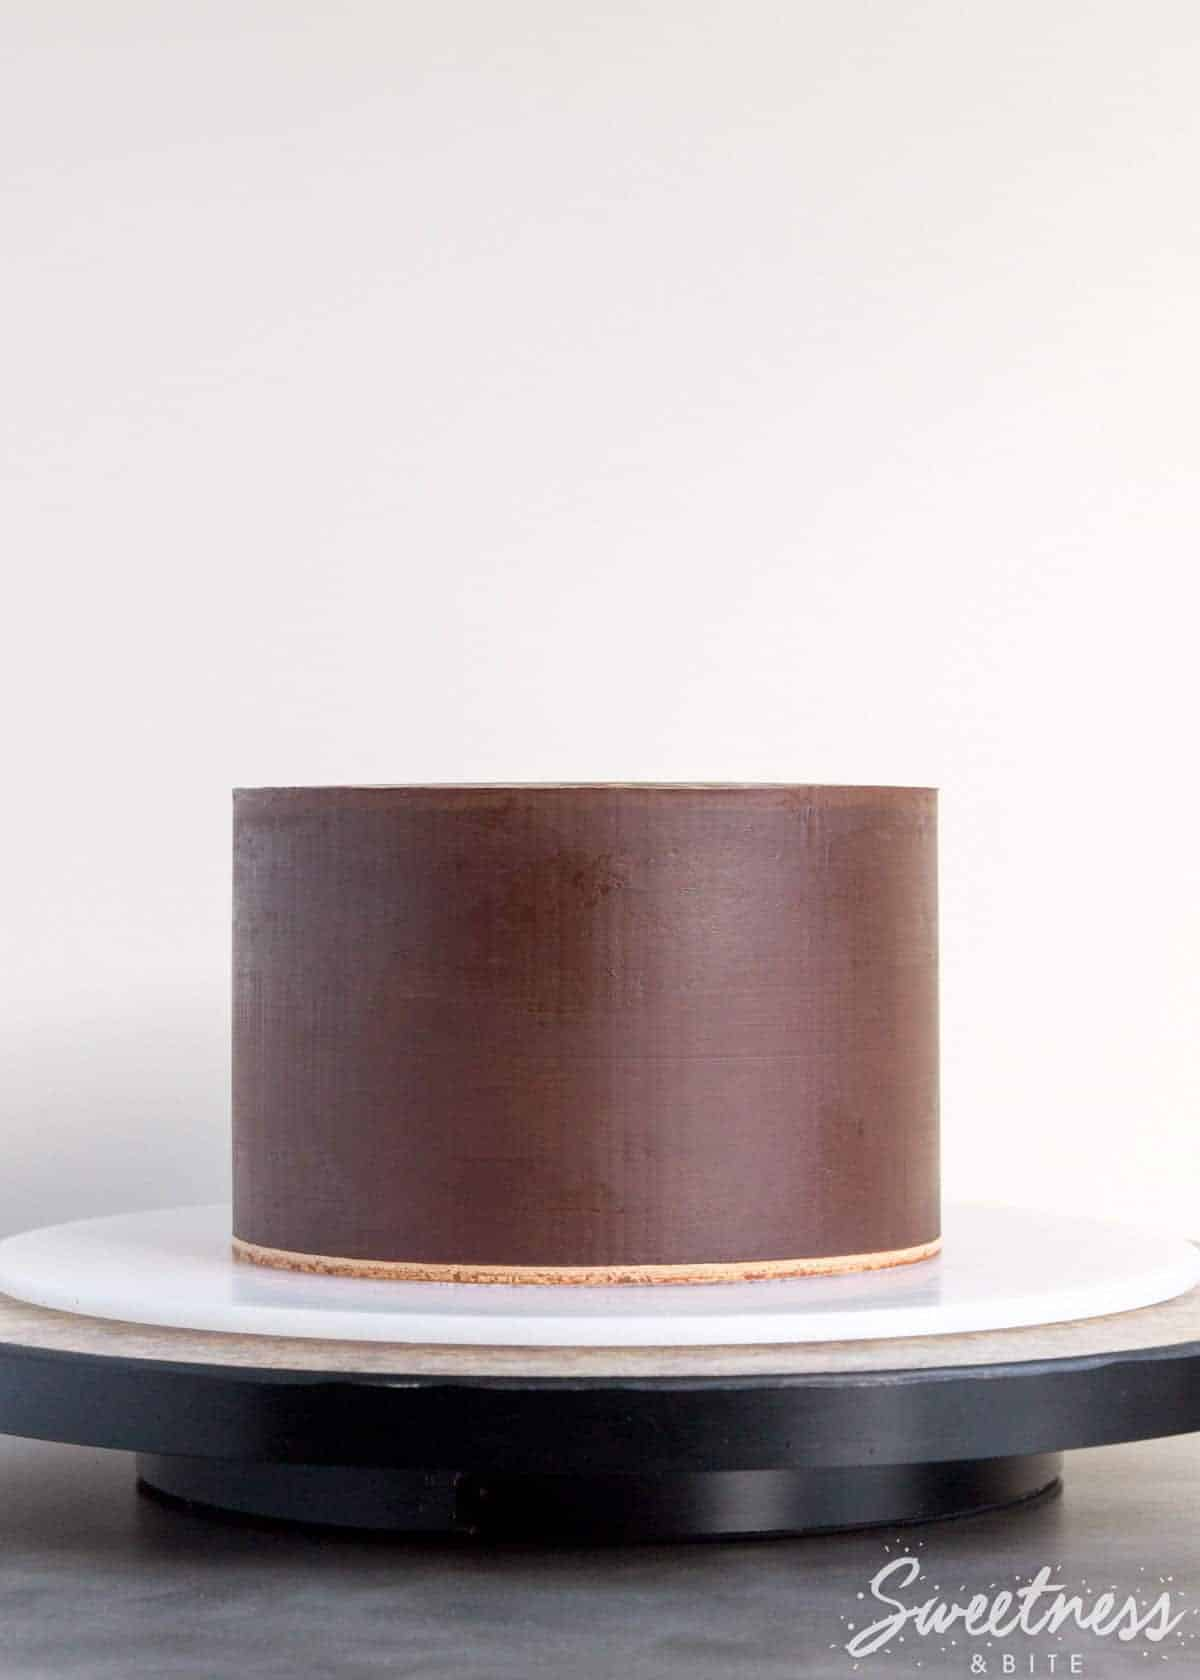 how-to-make-fondant-stick-to-ganache-featured-image